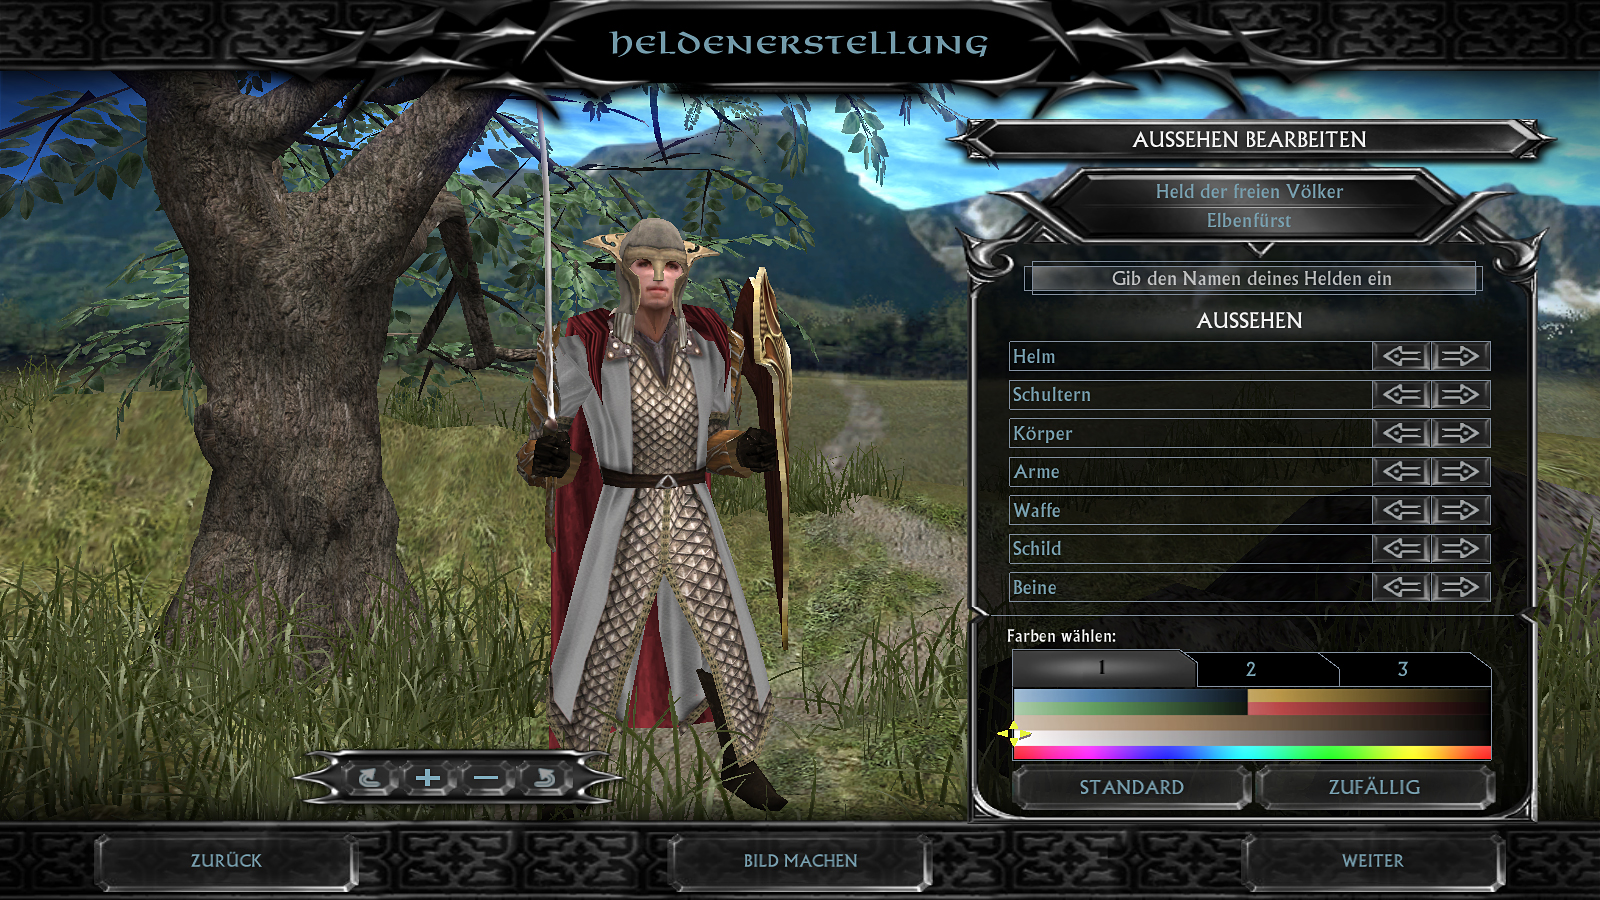 Lord Of The Rings Strategy Battle Game Character Stats